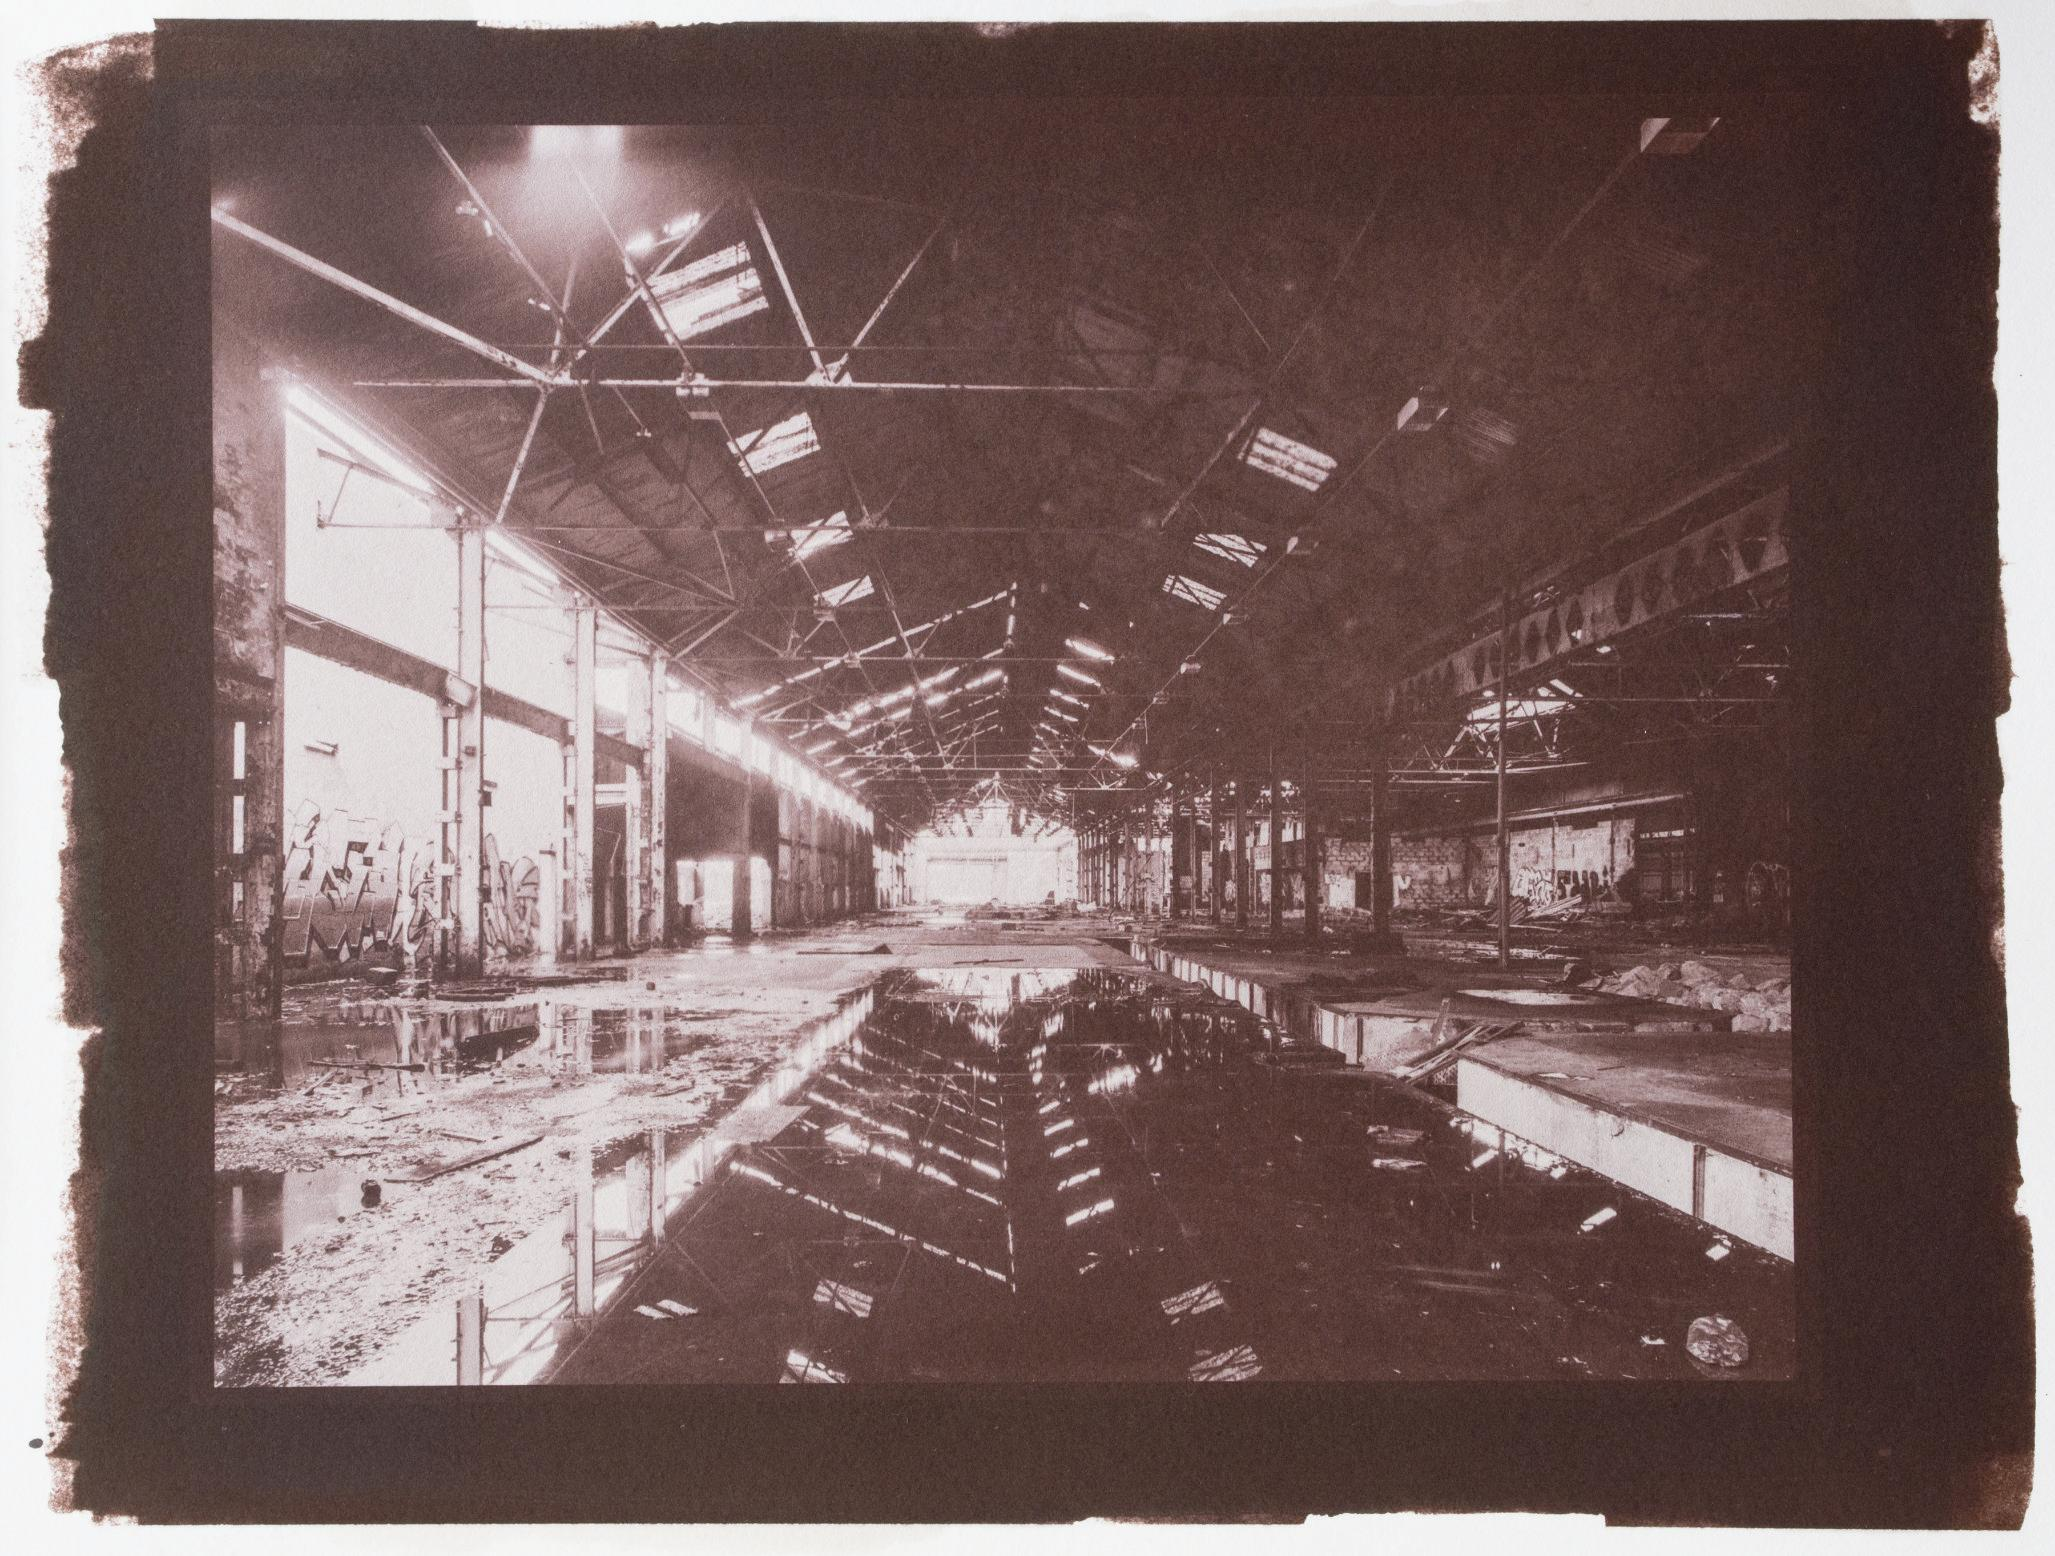 Page 8 of Roger Harrison was inspired by a process invented by the great pioneer of photography, William Henry Fox Talbot